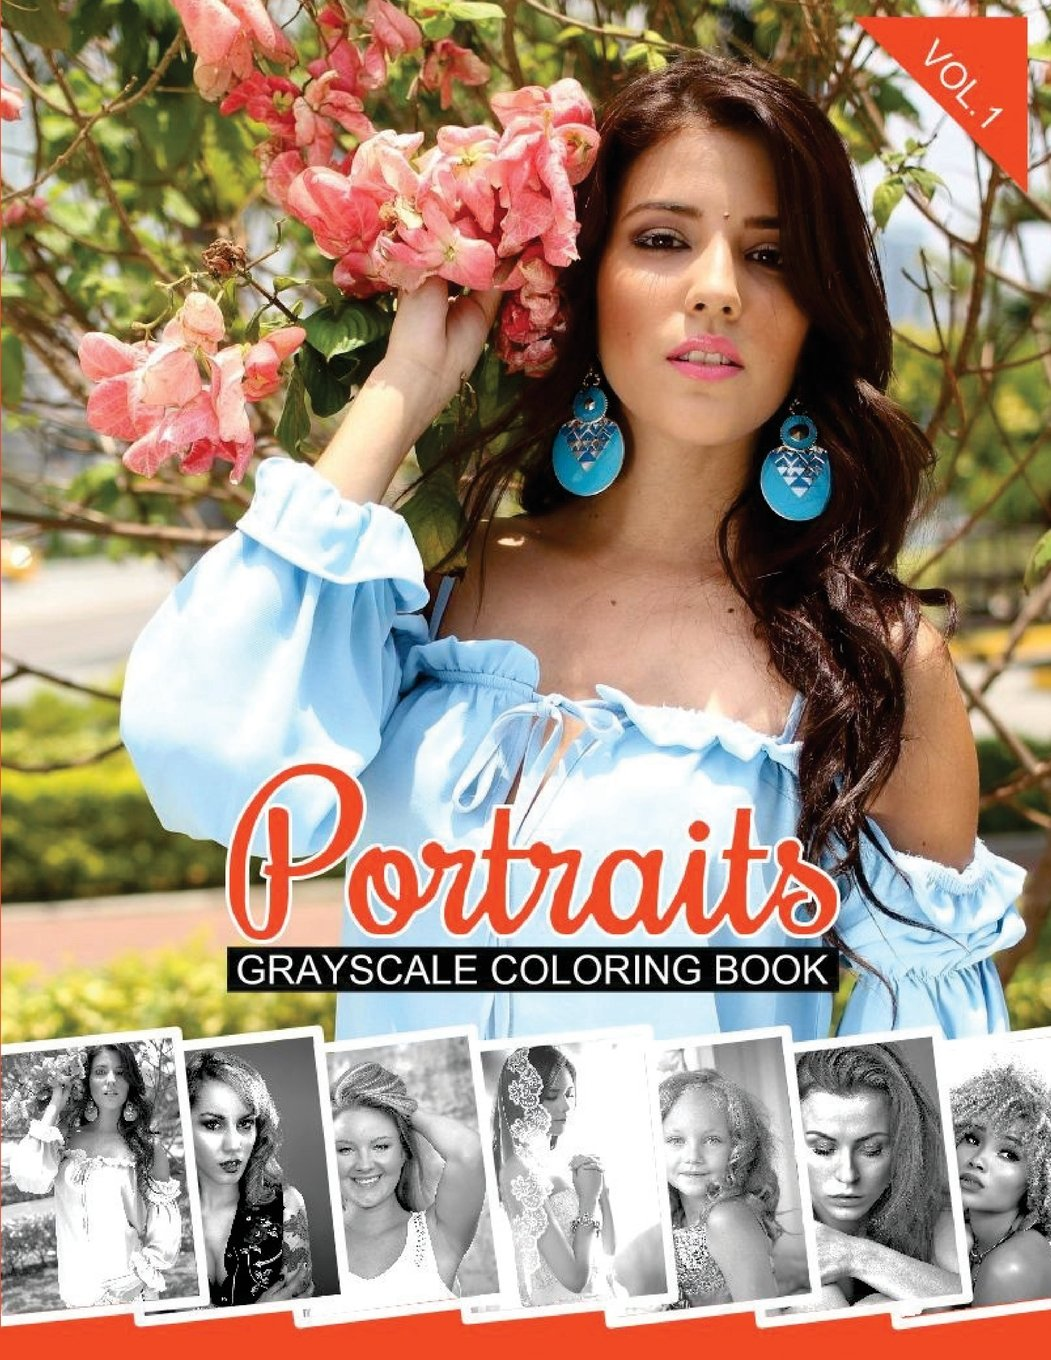 Portraits Grayscale Coloring Book Vol.1: Grayscale Coloring Pages (Adult Coloring Books) (Volume 1)